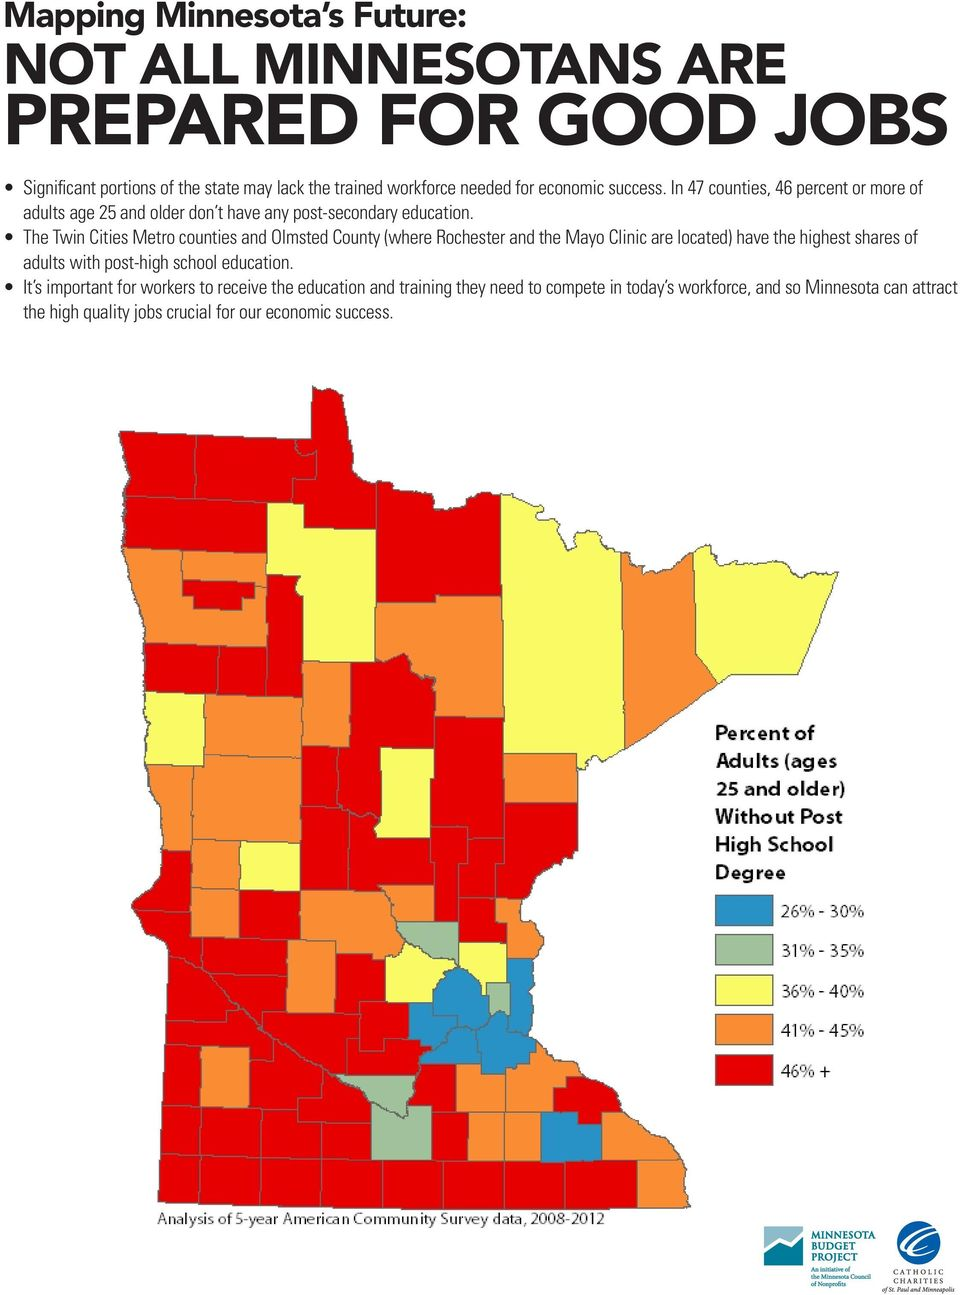 The Twin Cities Metro counties and Olmsted County (where Rochester and the Mayo Clinic are located) have the highest shares of adults with post-high